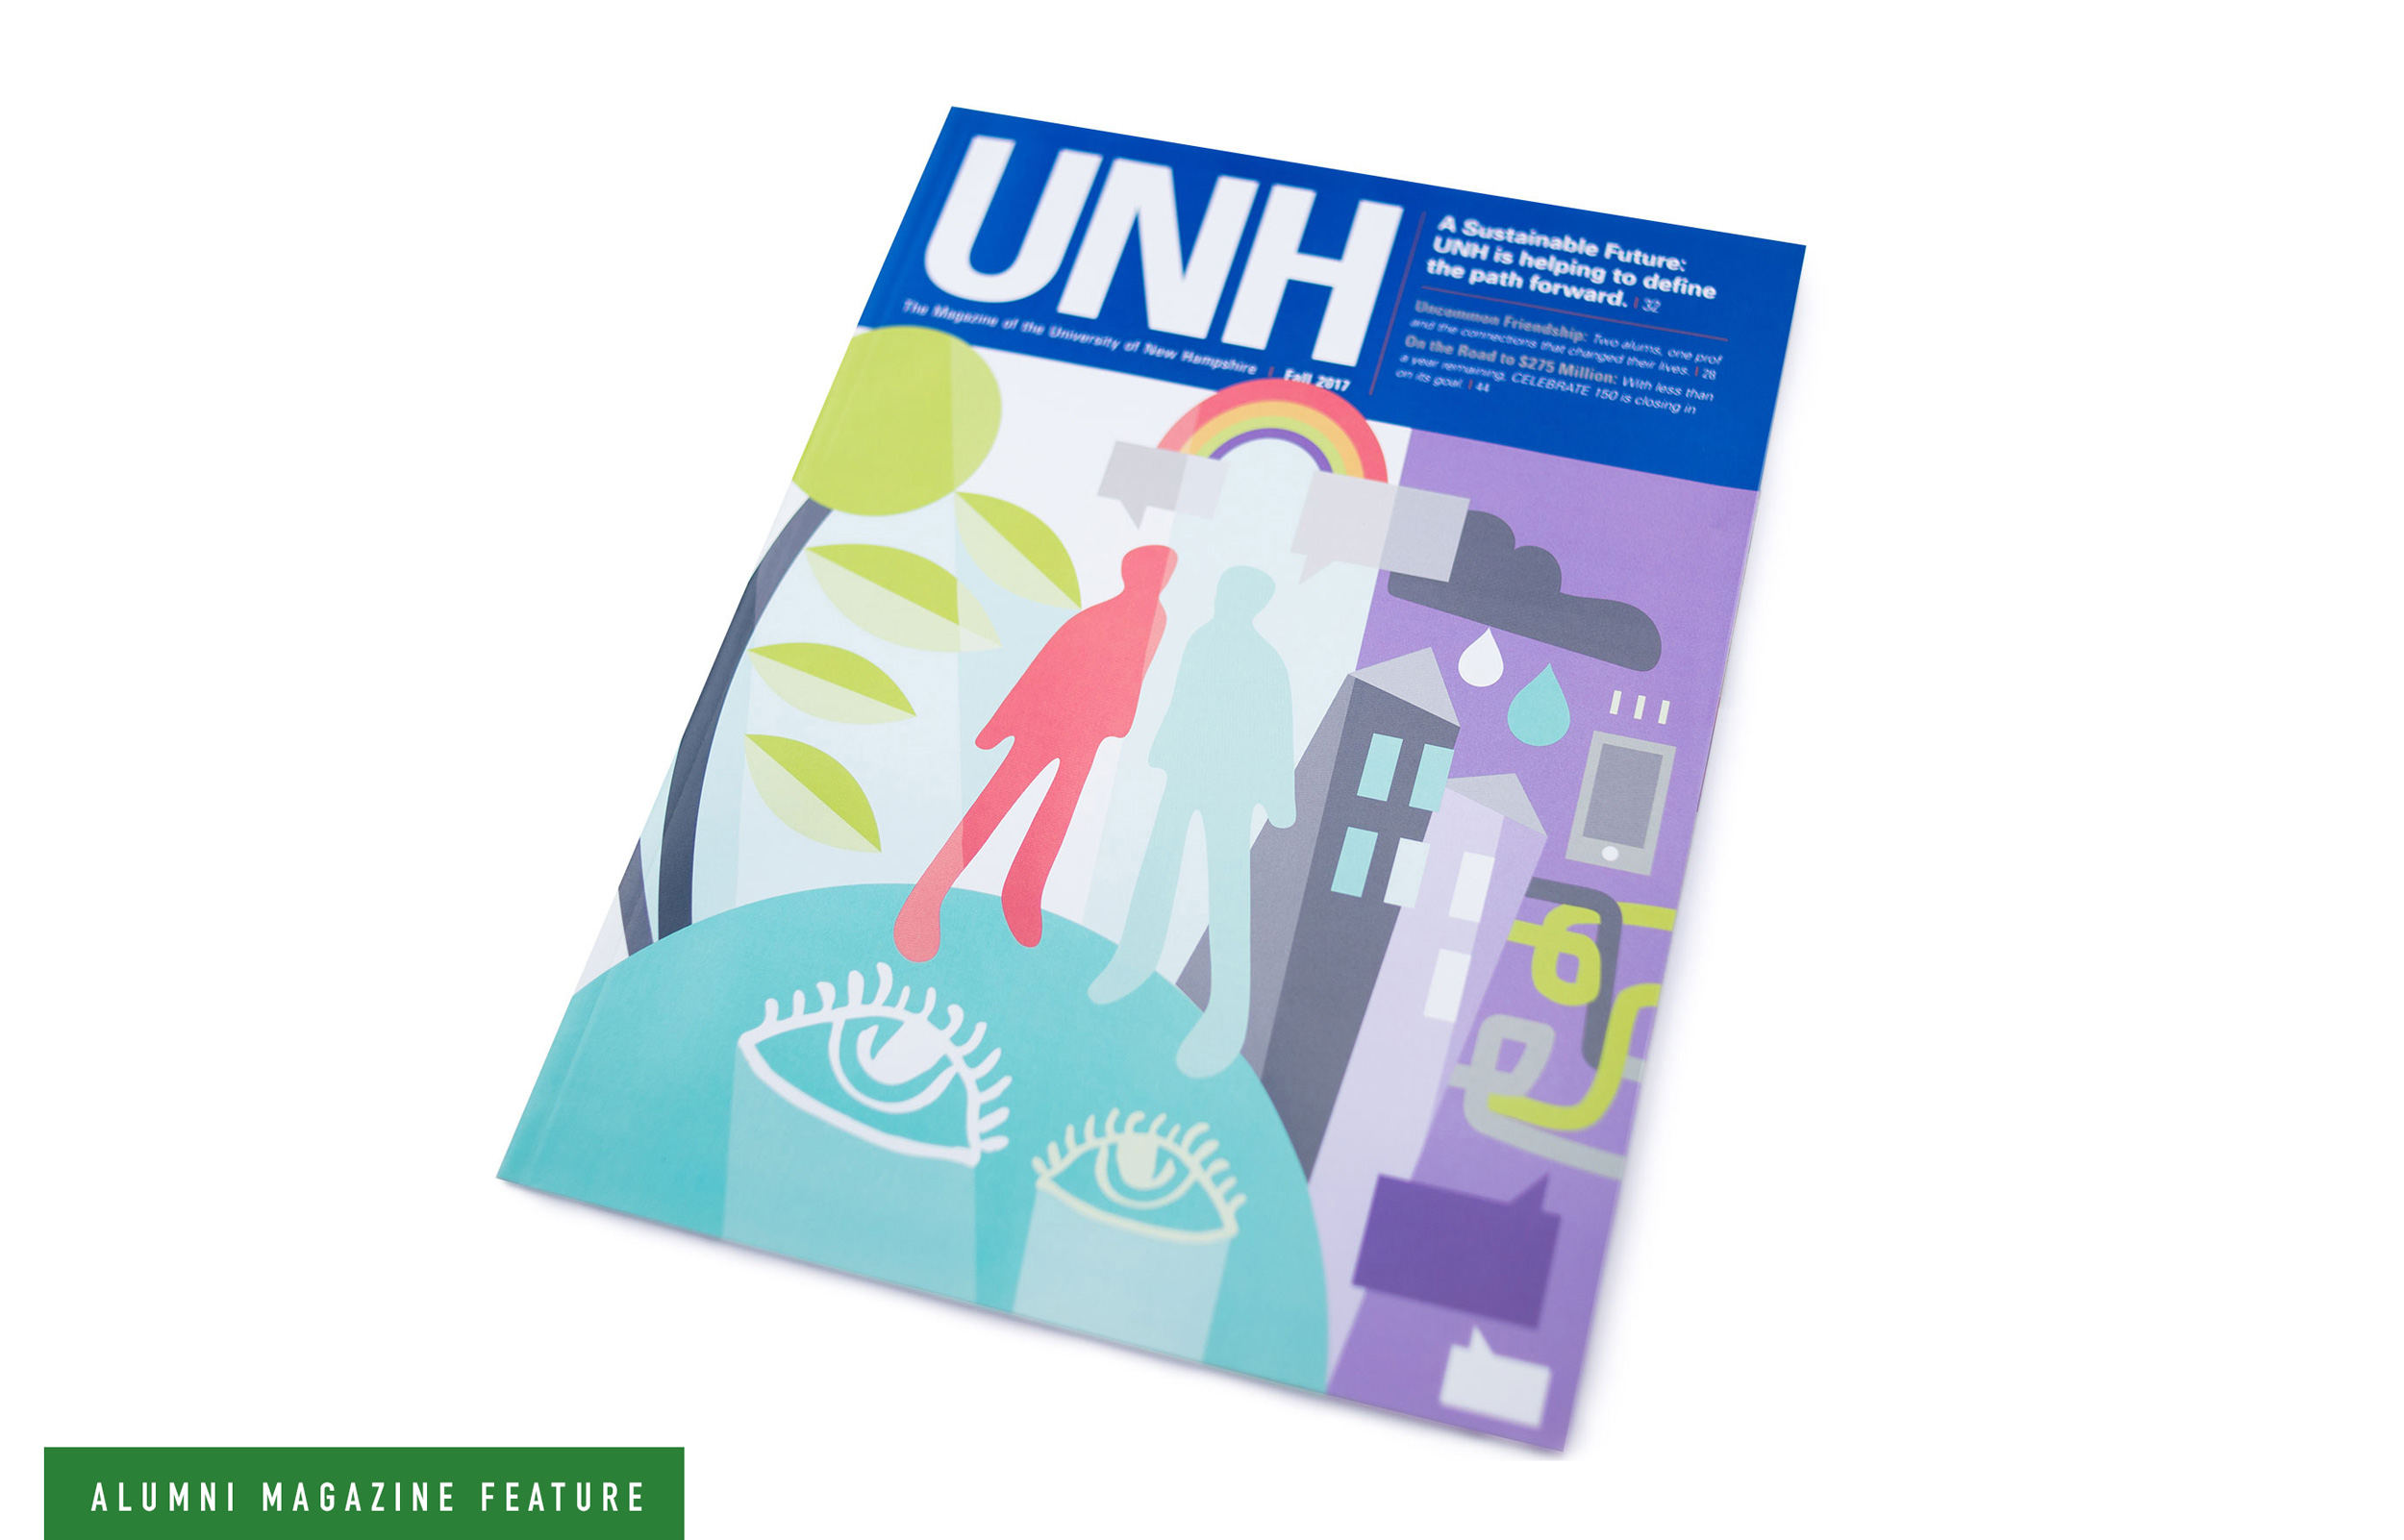 UNH Alumni Magazine Sustainability Feature Cover Illustration - Loren Marple